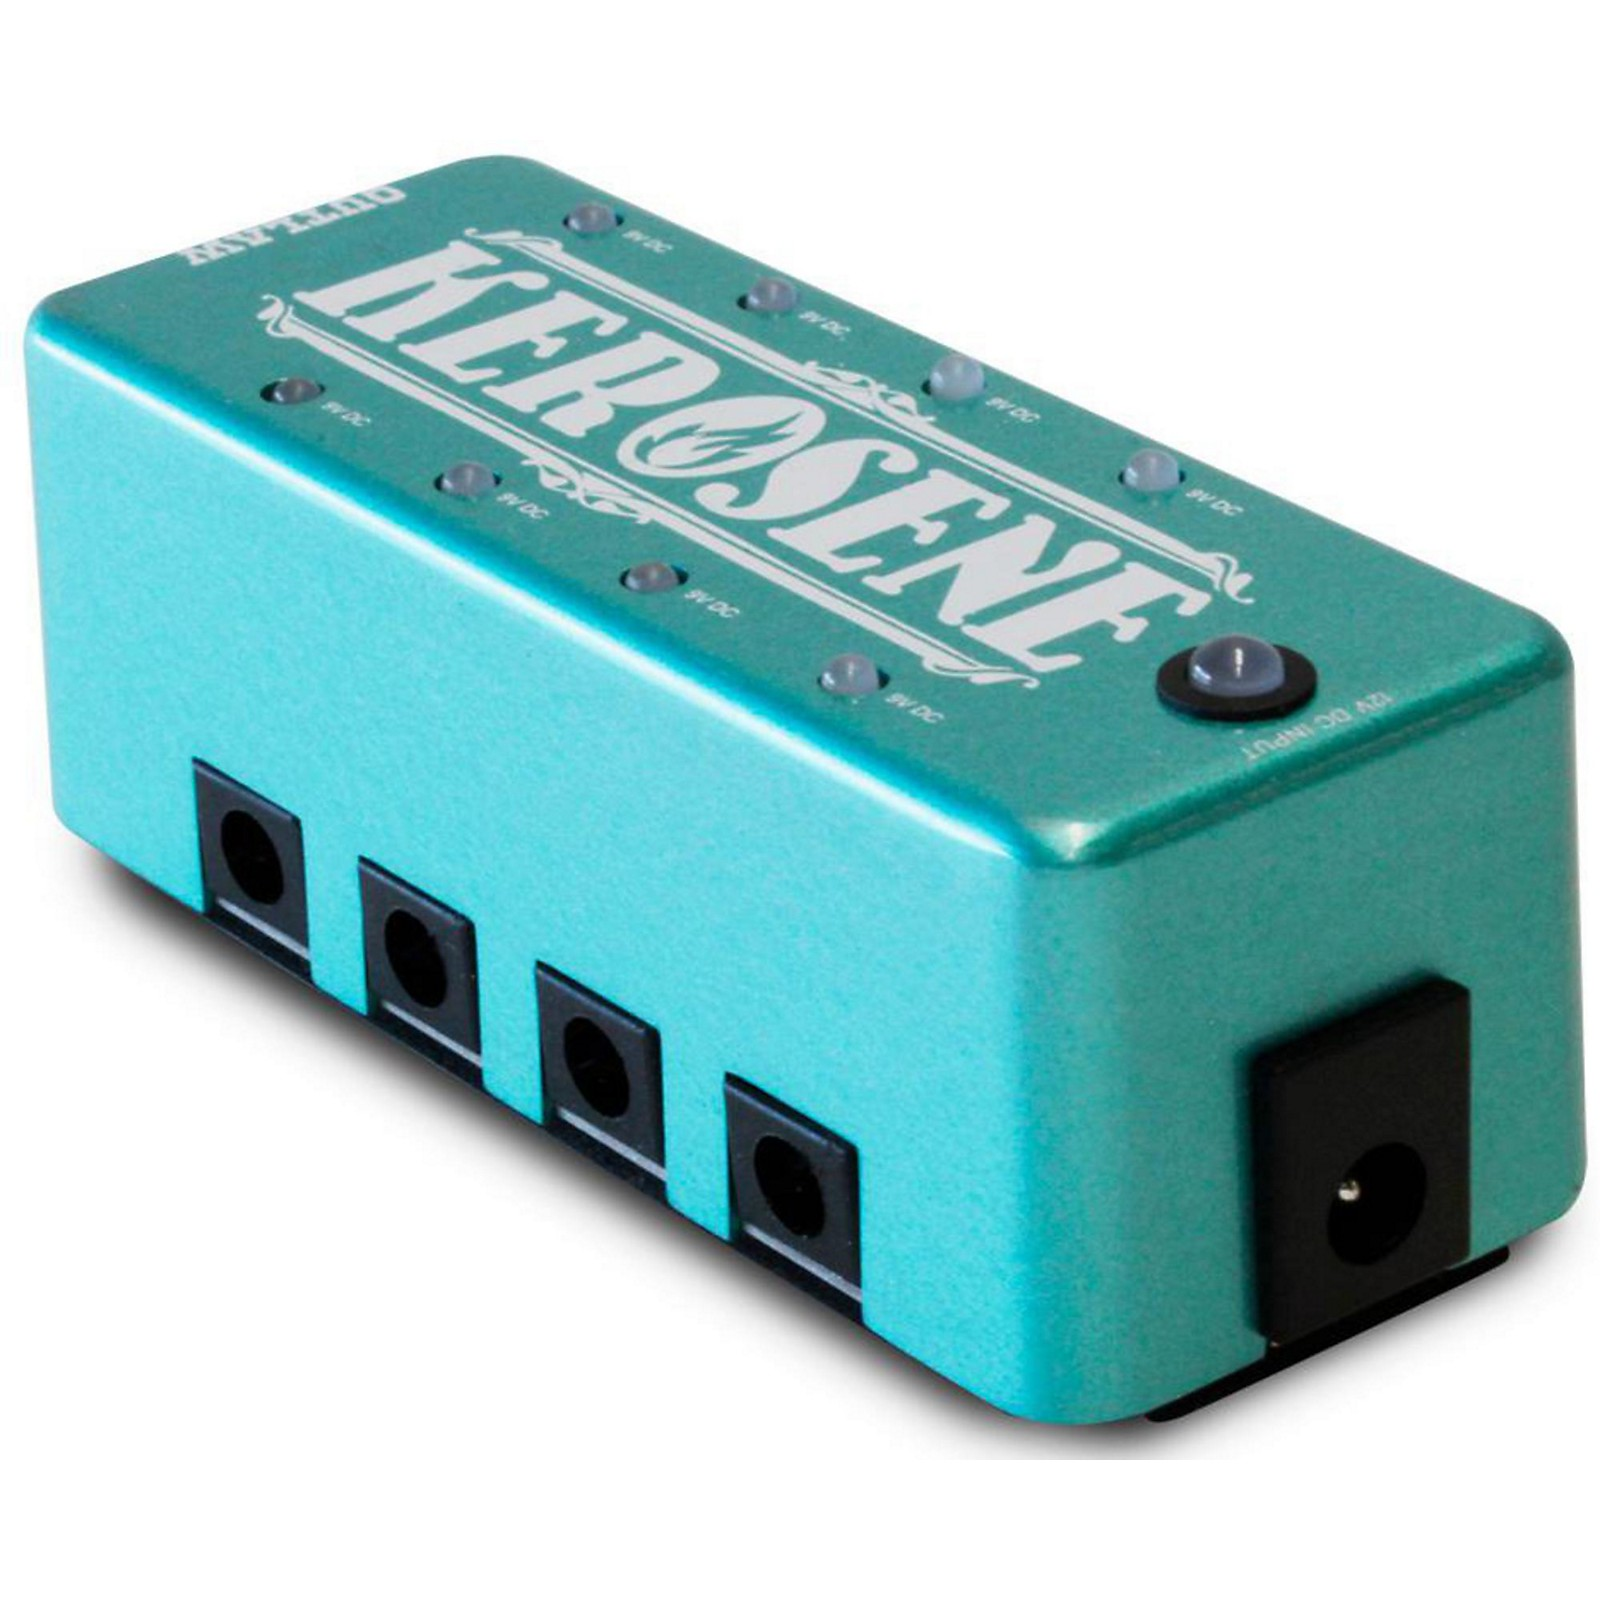 Outlaw Effects Micro Power Supply